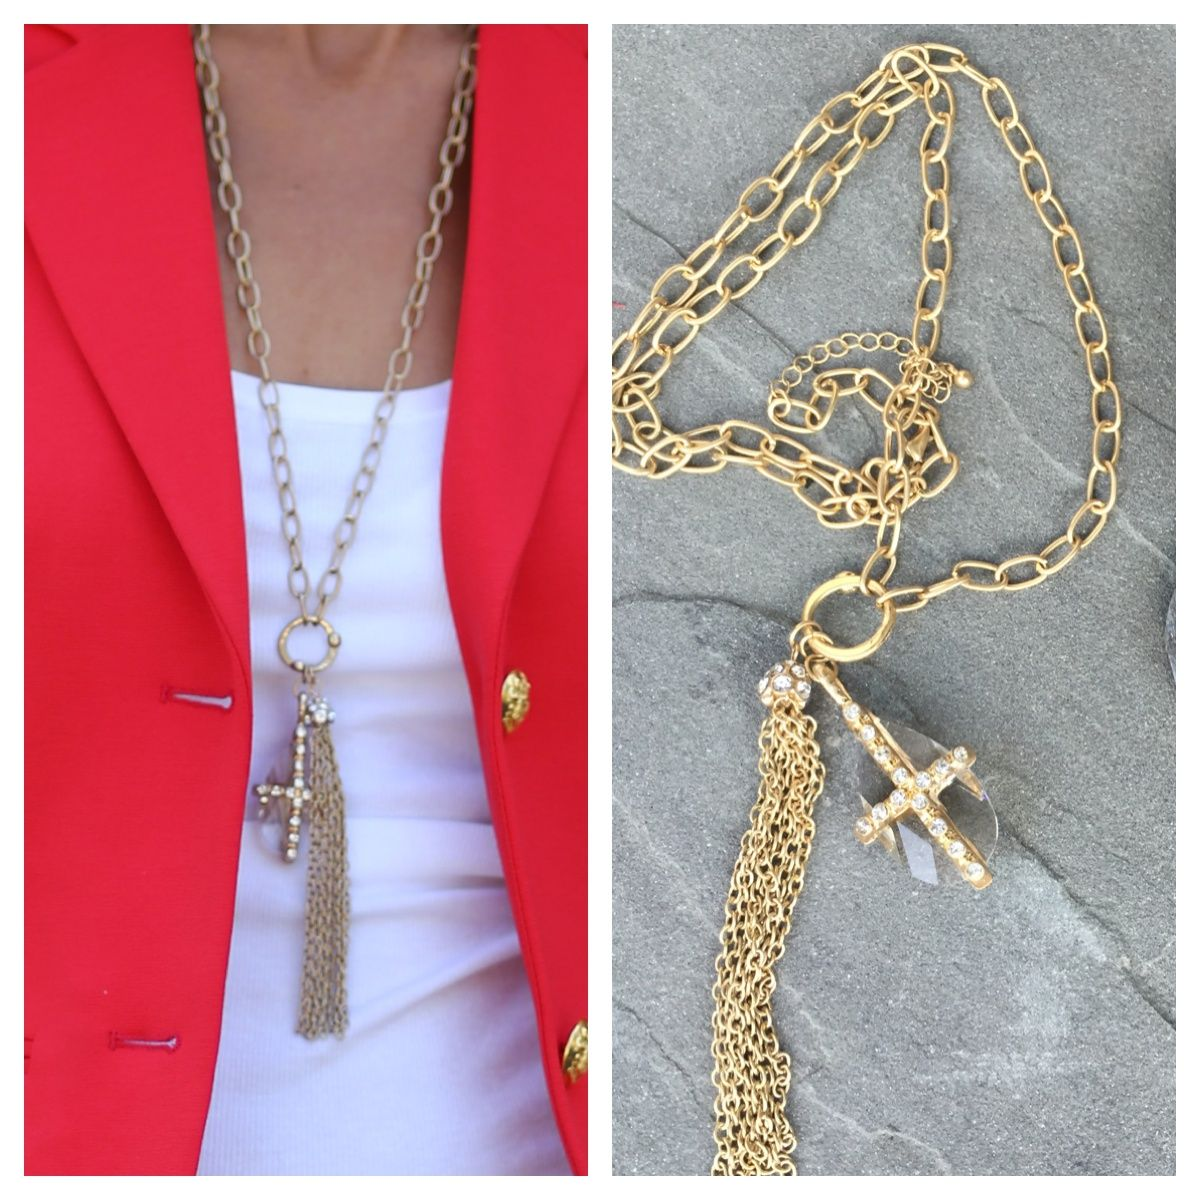 On the blog today our beautiful matt gold chain necklace with pendant and chain tassel only $38.00 free shipping in US only get yours here while they last http://www.jacketsociety.com/product/long-matt-gold-tone-necklace-with-pendant-and-chain-tassle/